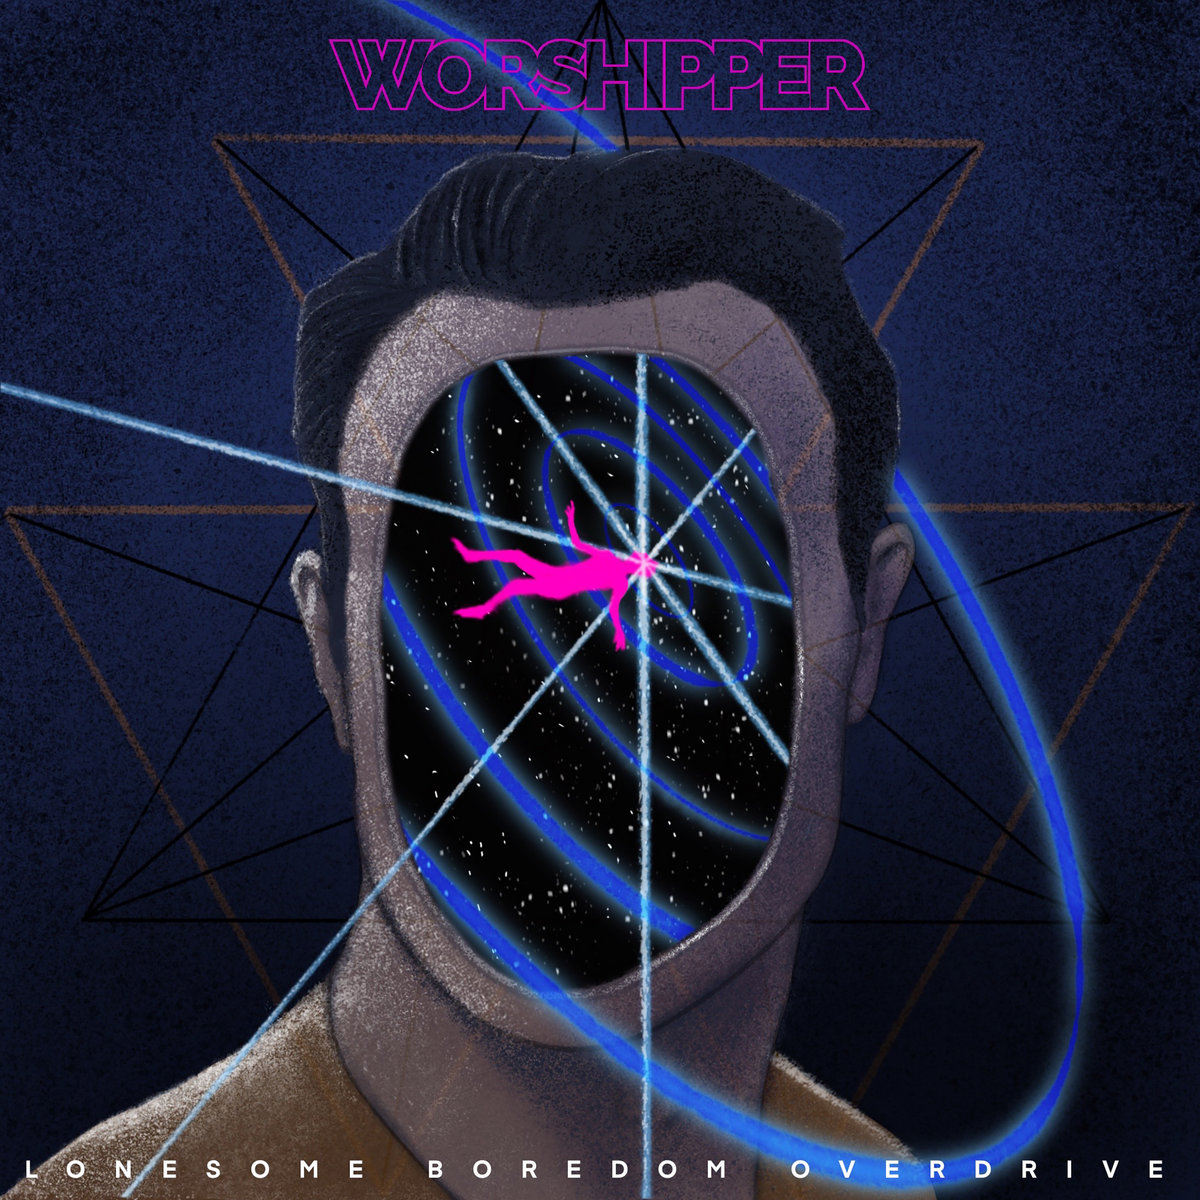 worshipper lonesome boredom overdrive